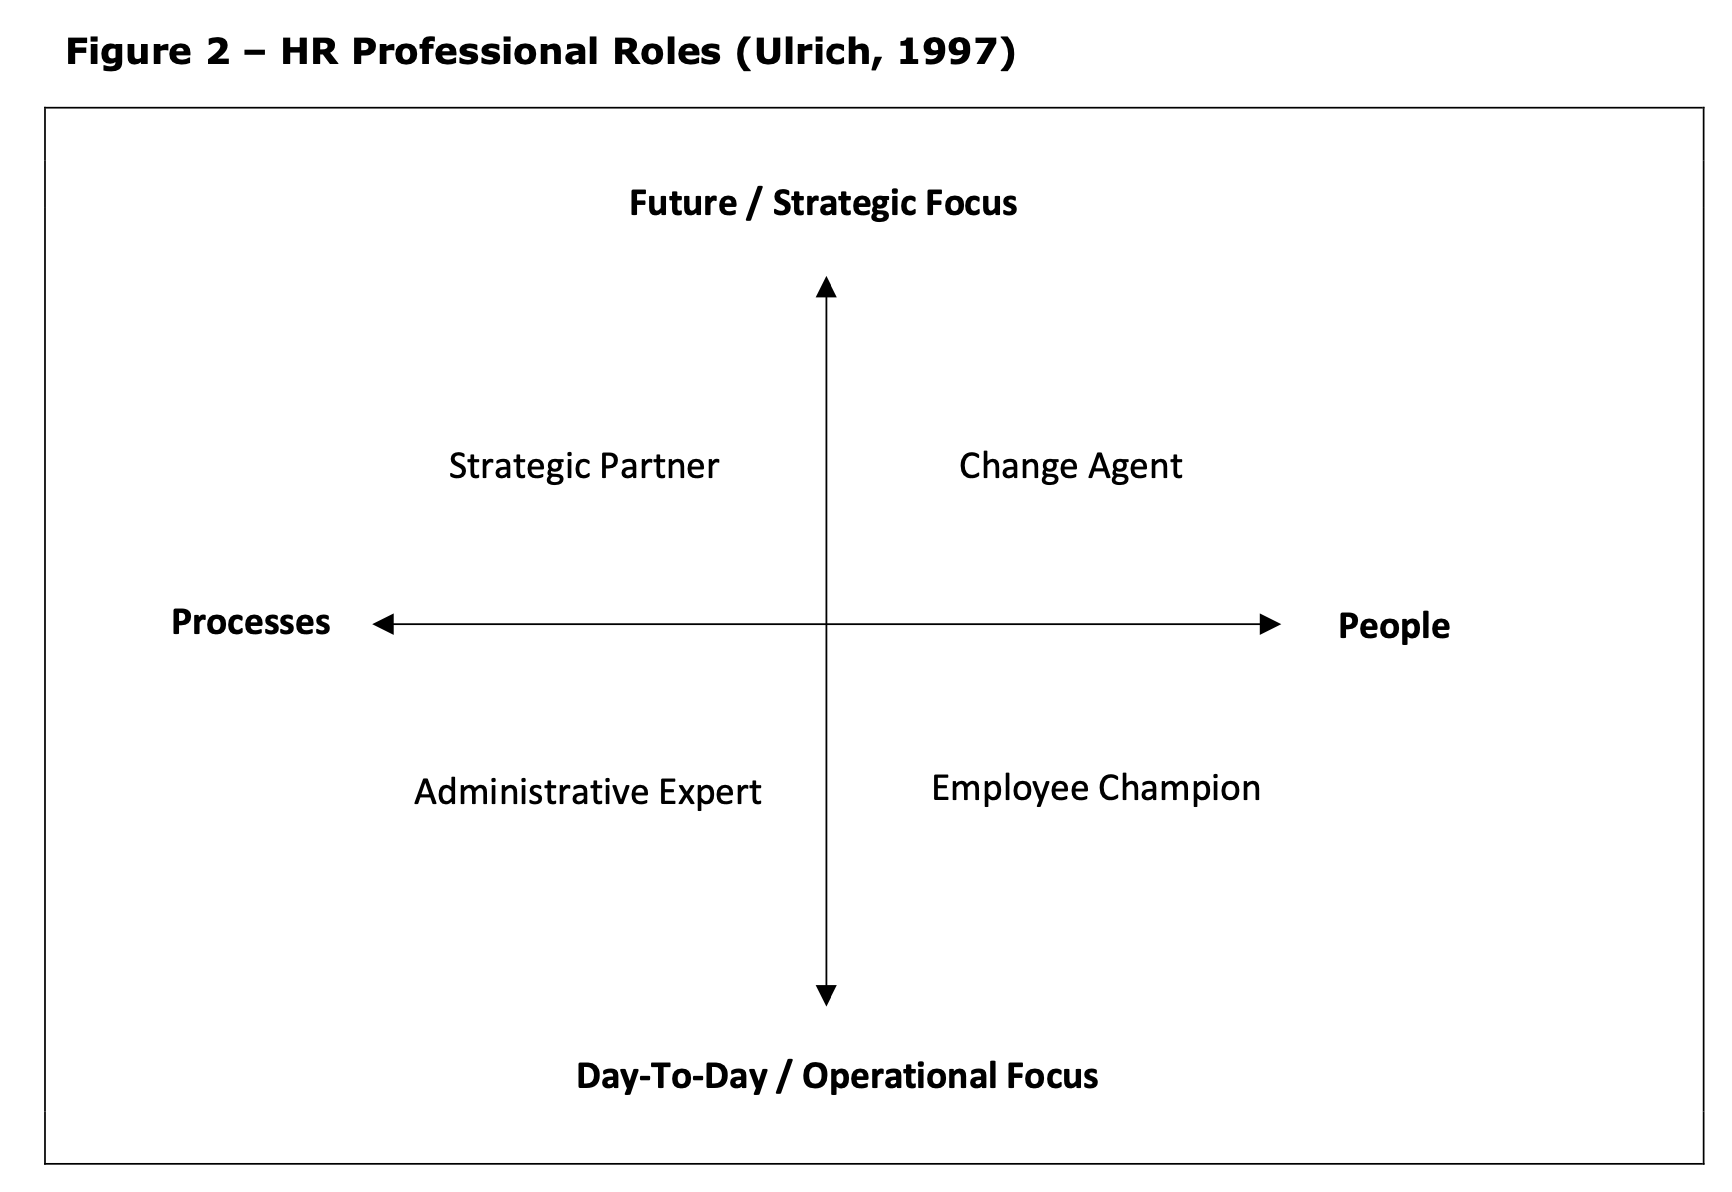 HR professional roles diagram (Ulrich, 1997)